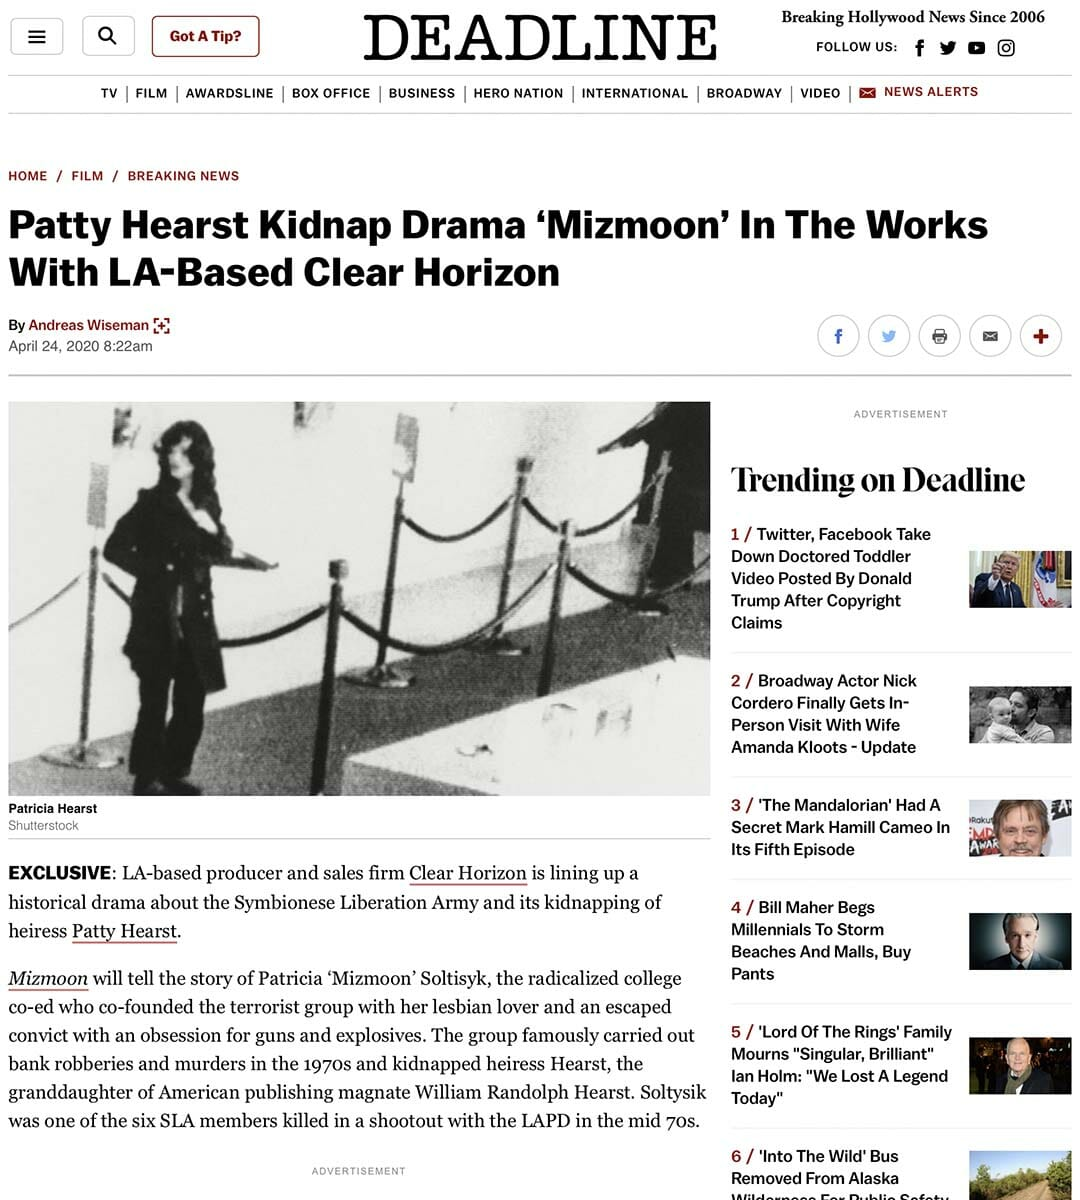 DEADLINE: Patty Hearst Kidnap Drama 'Mizmoon' In The Works With LA-Based Clear Horizon